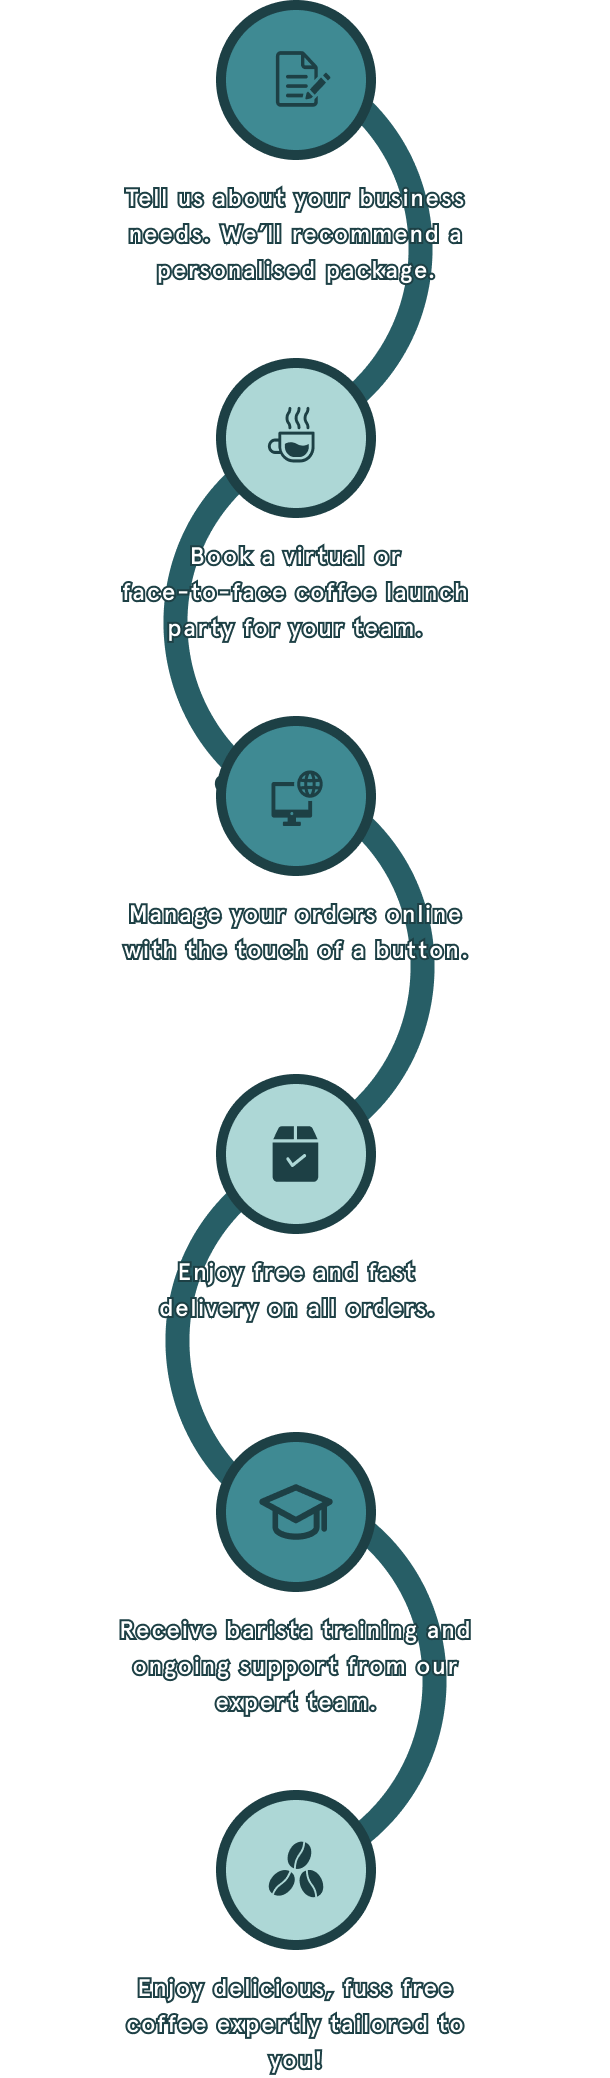 how it works image